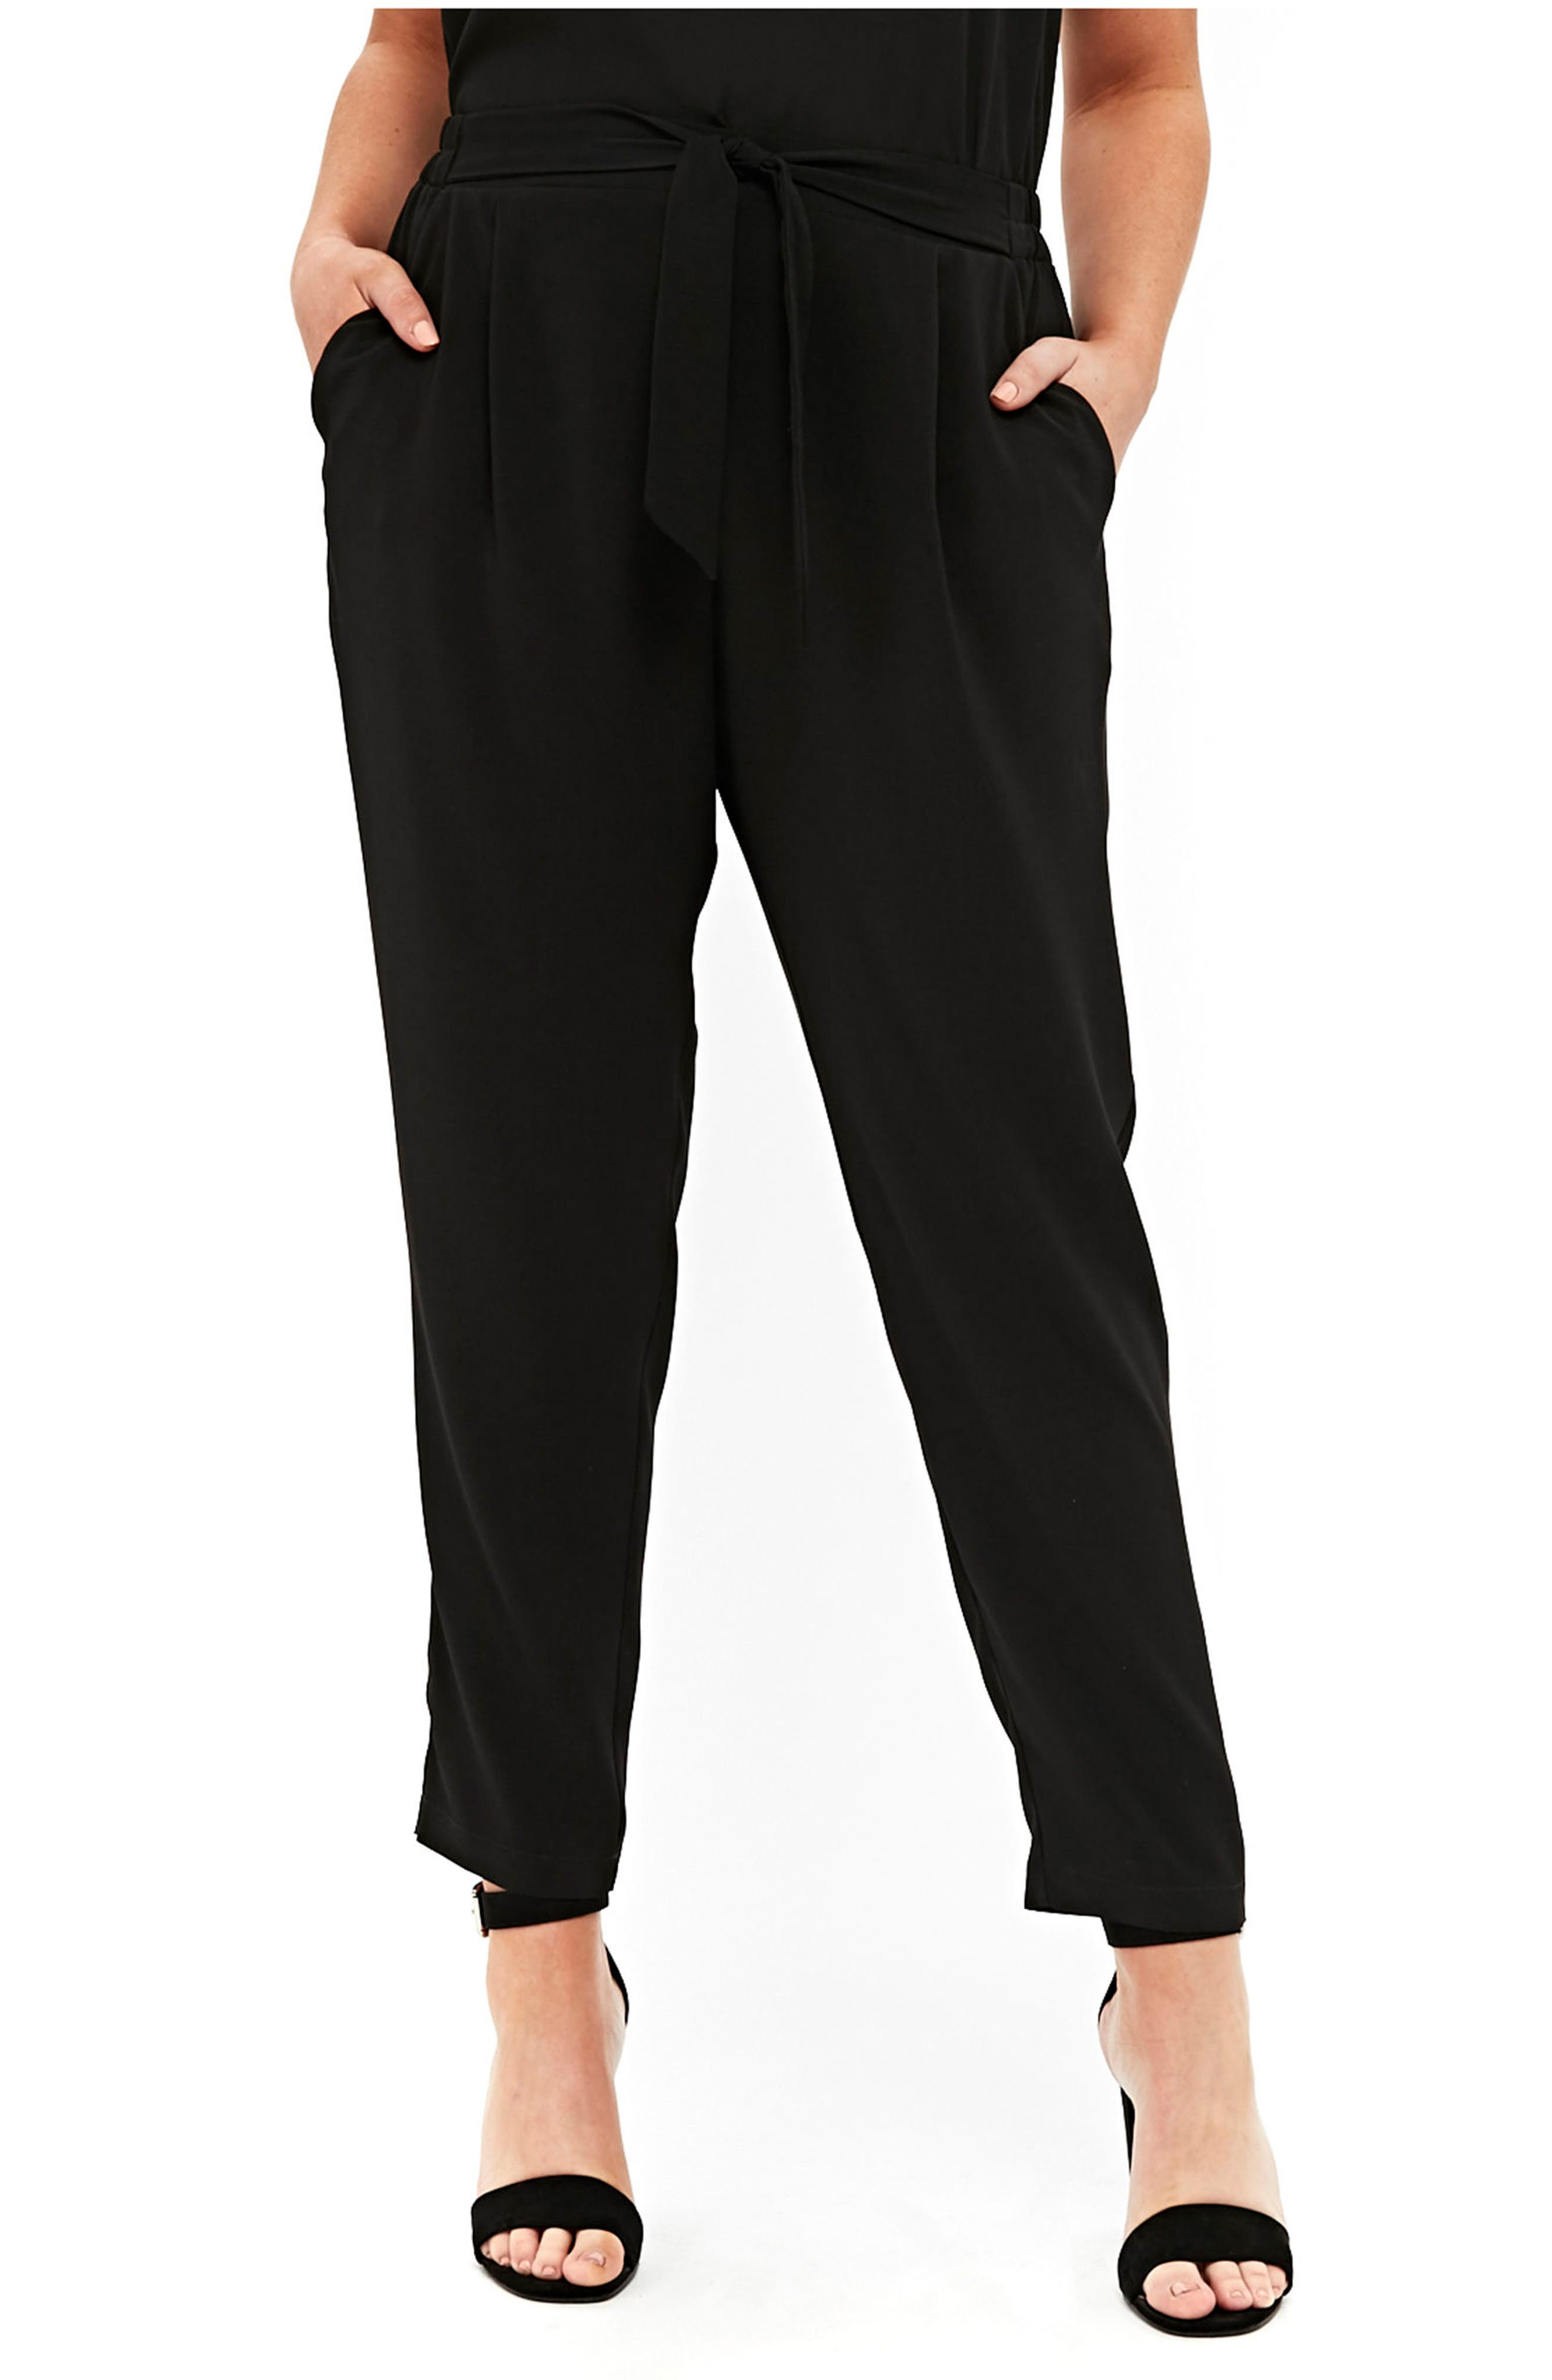 Ripple Tapered Pants,                         Main,                         color, Black